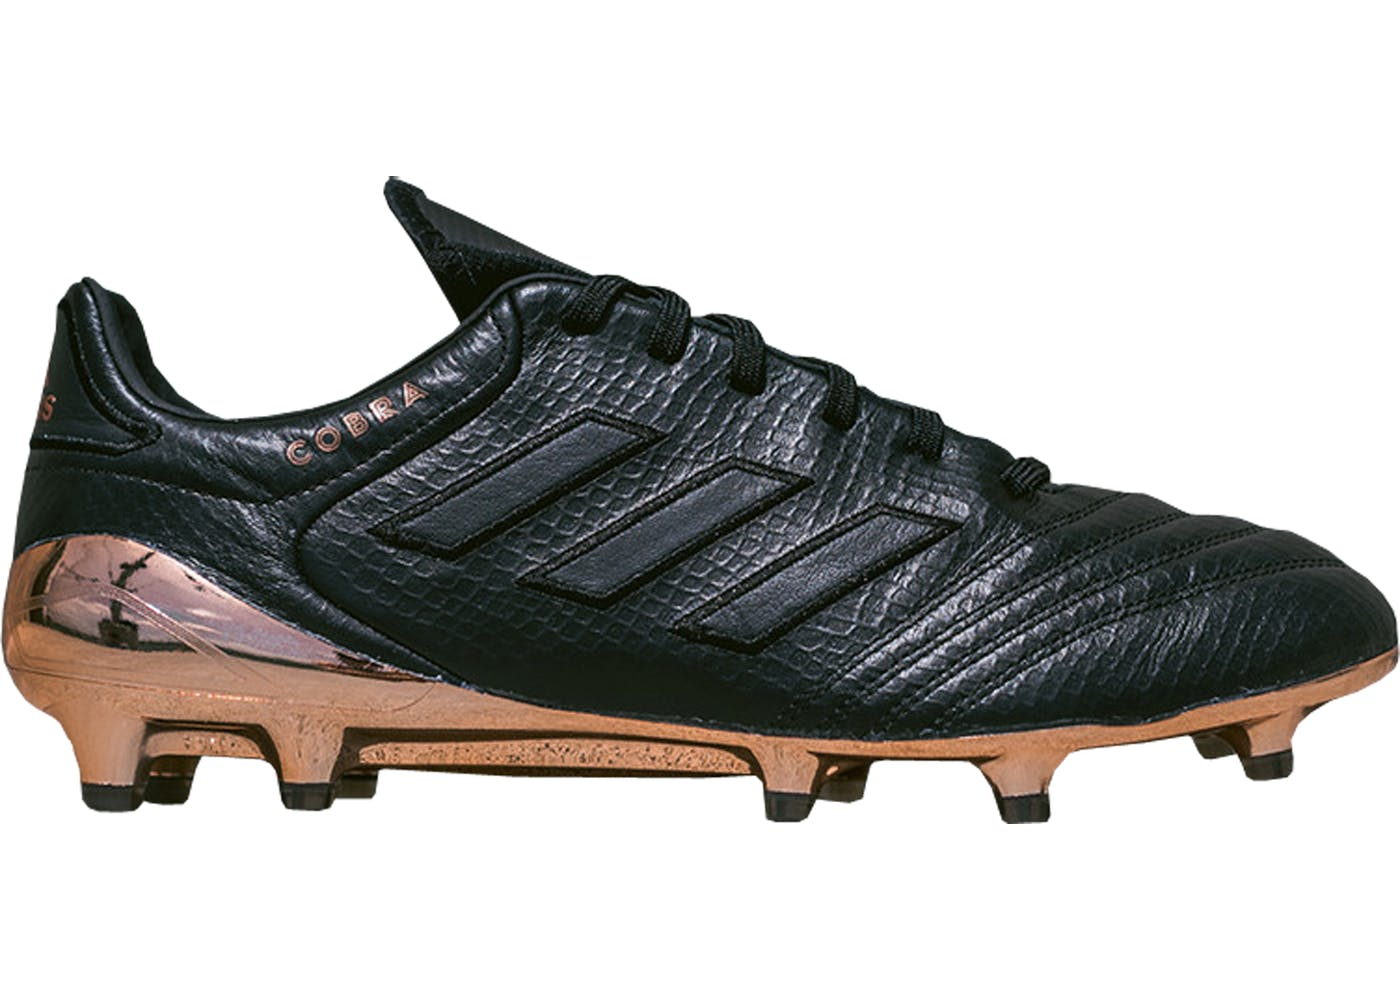 adidas copa mundial 17 cleat kith cobras. Black Bedroom Furniture Sets. Home Design Ideas